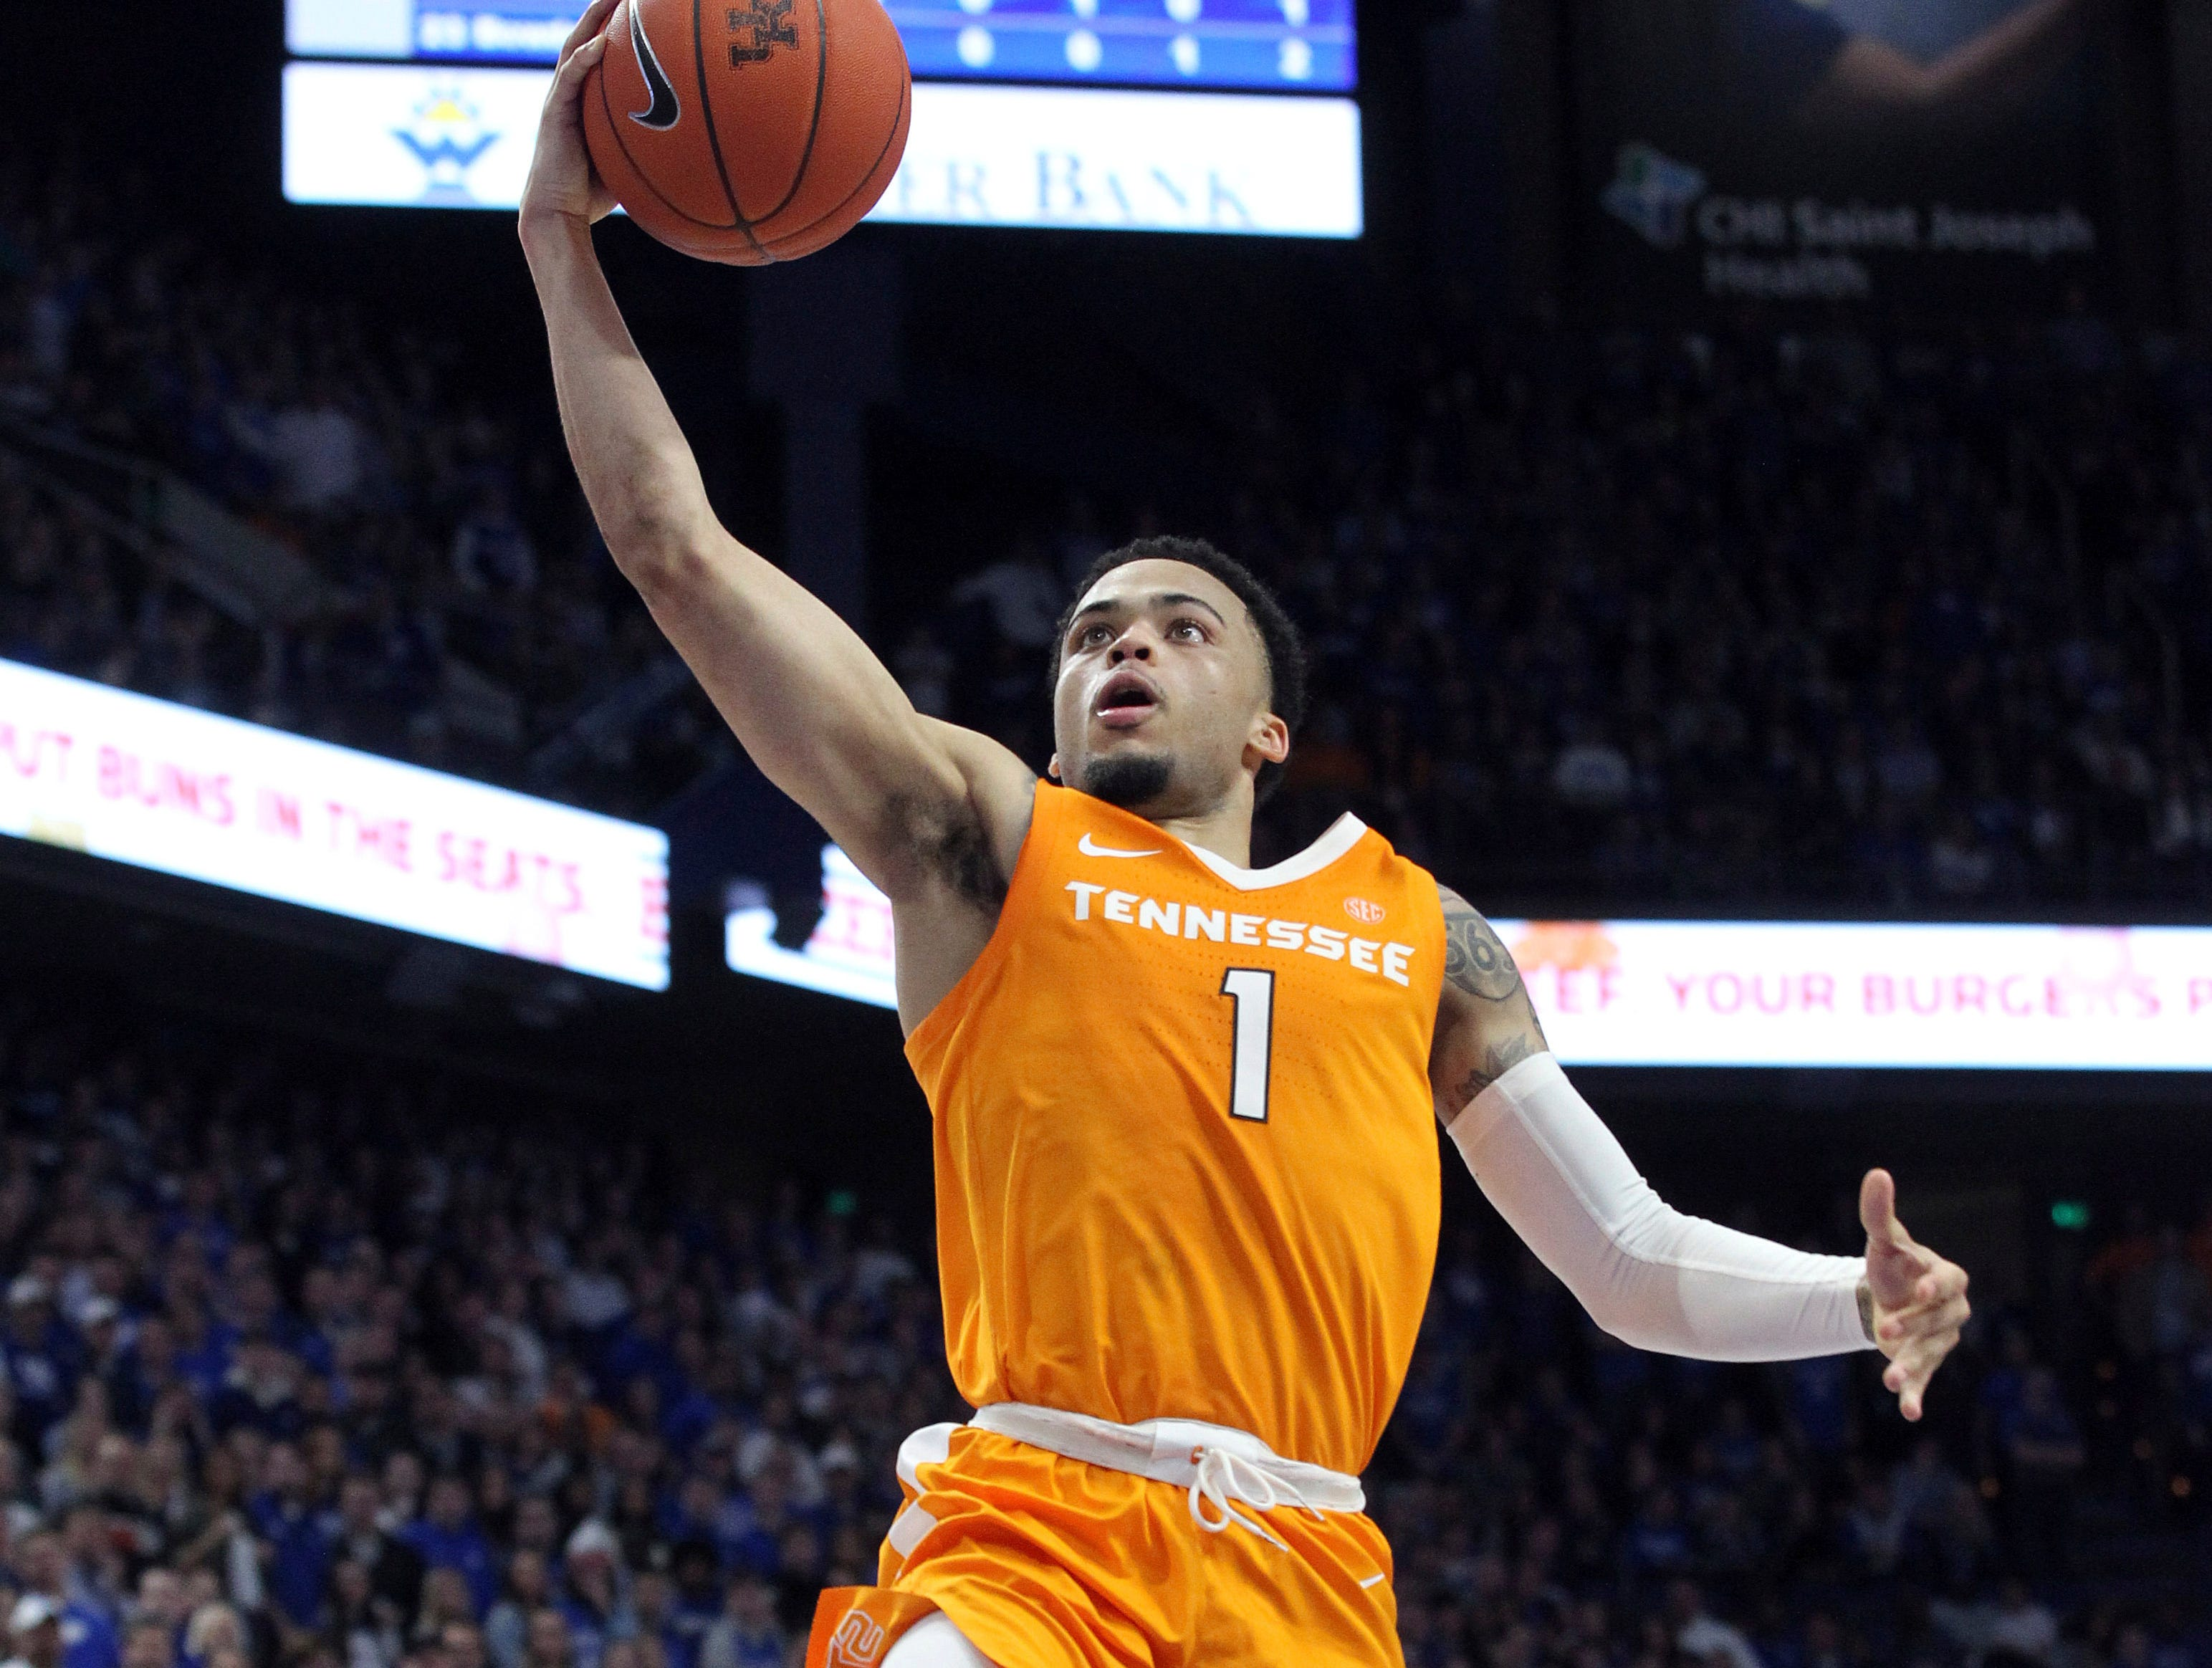 Tennessee's Lamonte Turner shoots during the second half of an NCAA college basketball game against Kentucky in Lexington, Ky., Saturday, Feb. 16, 2019. Kentucky won 86-69. (AP Photo/James Crisp)